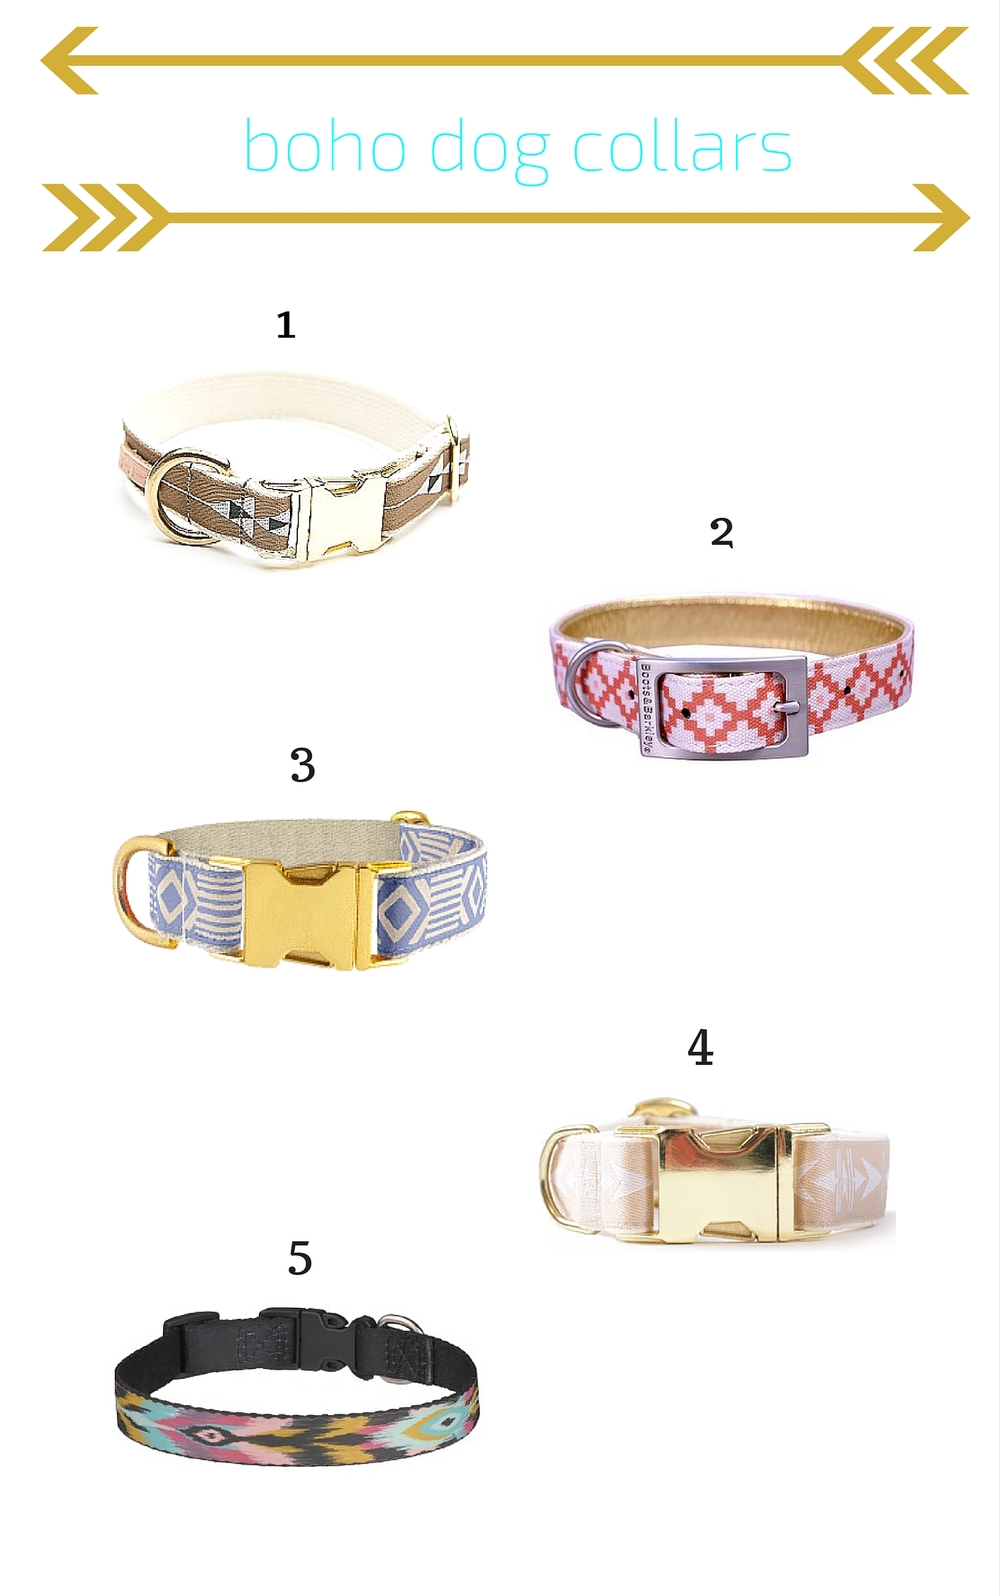 Boho dog collar round up.